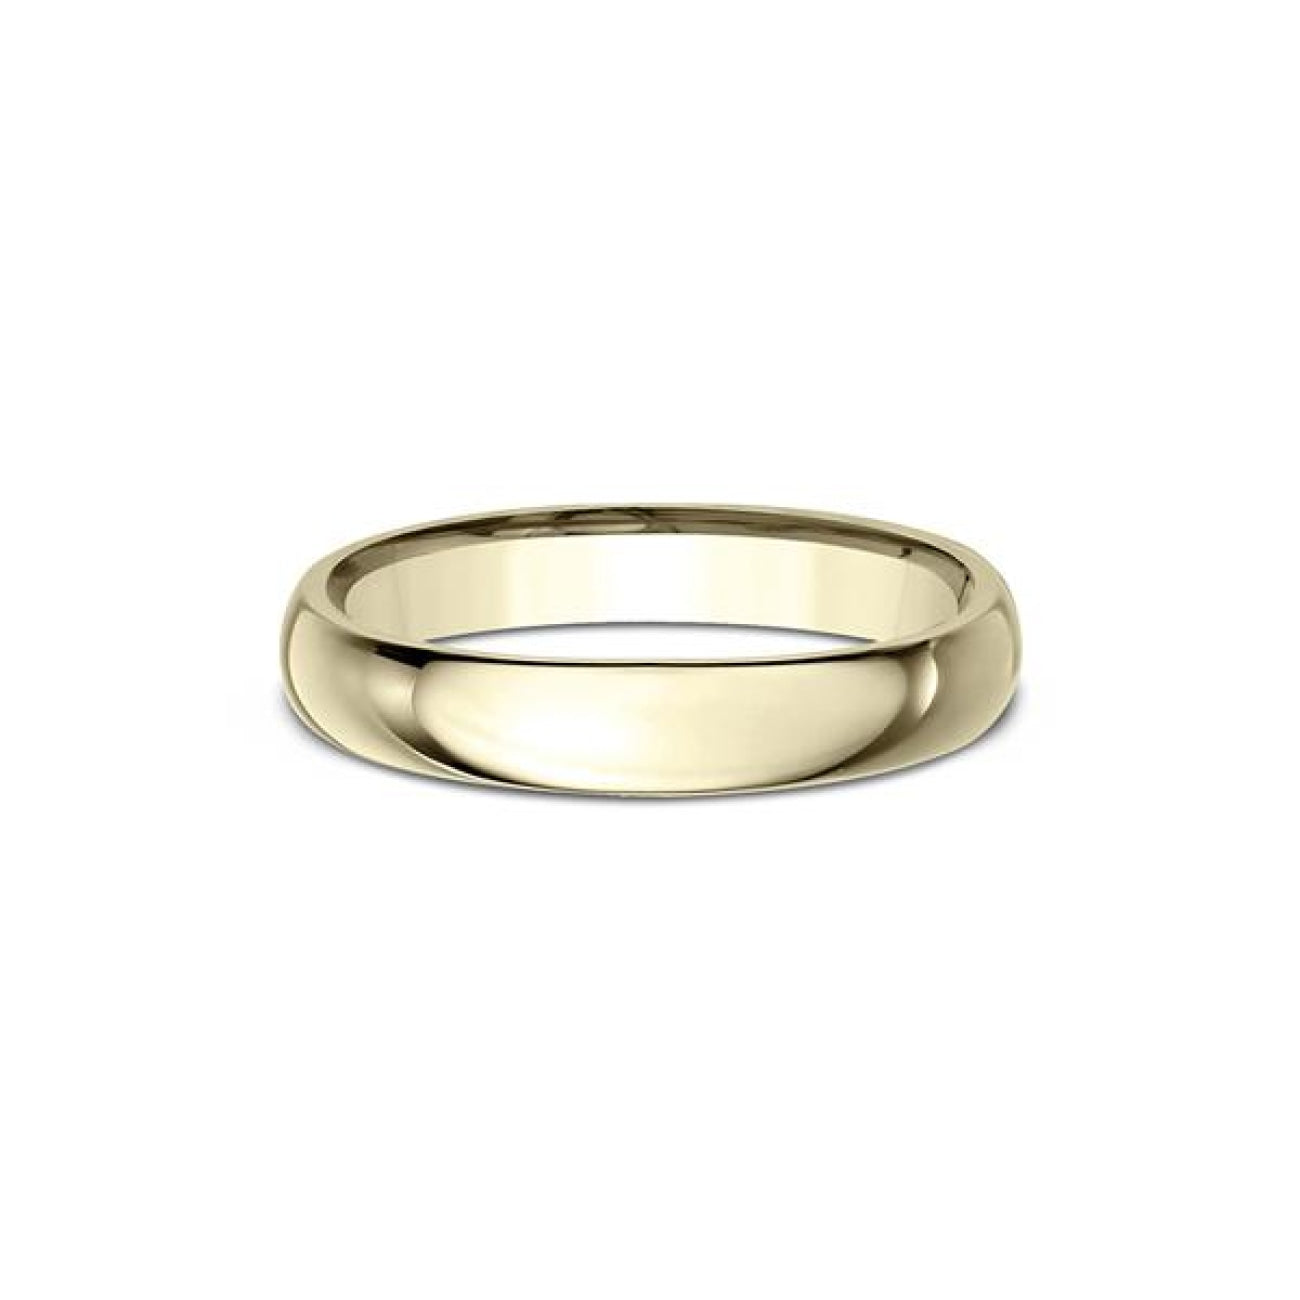 Benchmark Engagement - Standard Comfort-Fit Wedding Ring | Manfredi Jewels